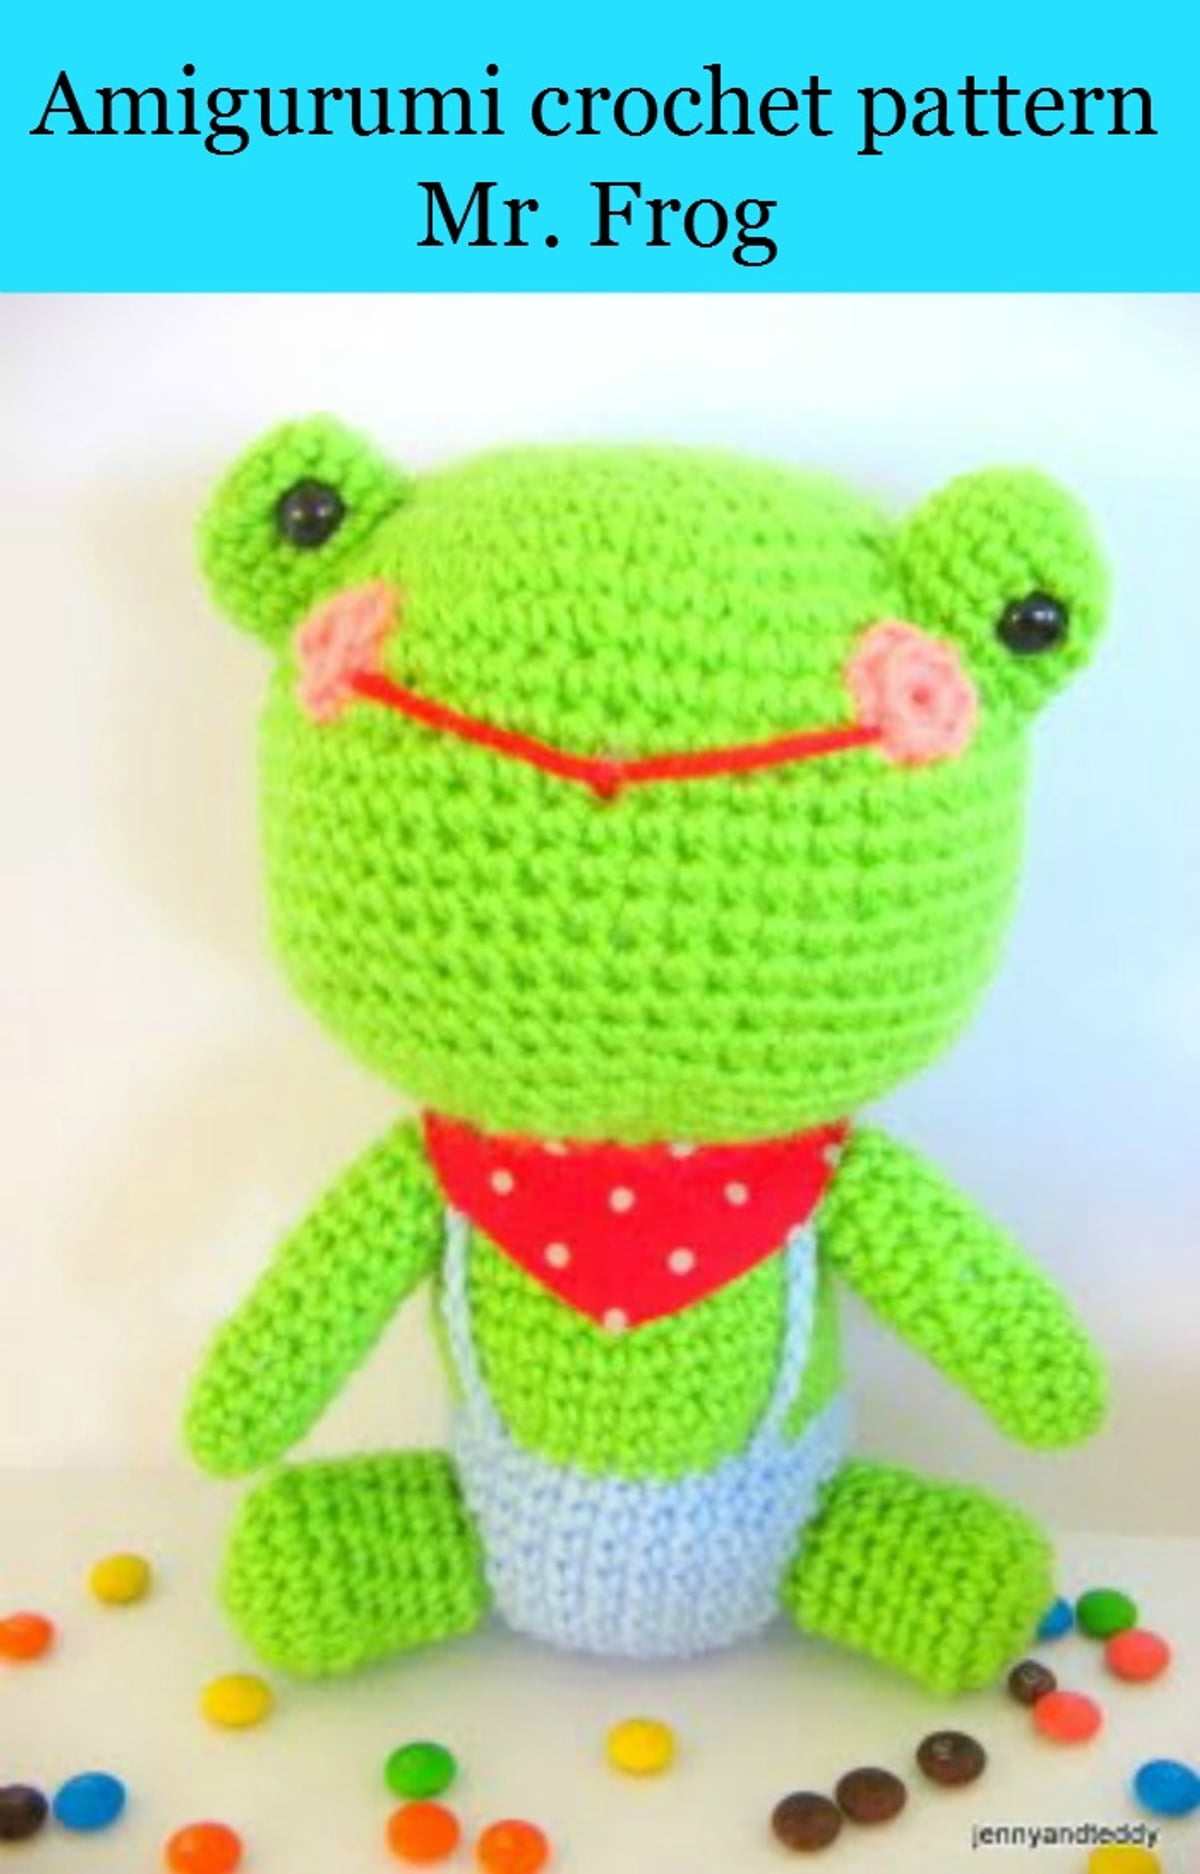 Free Ebook Amigurumi Crochet Pattern Mr Frog Ebook By Teerapon Chaniam   1230000139248  Rakuten Kobo